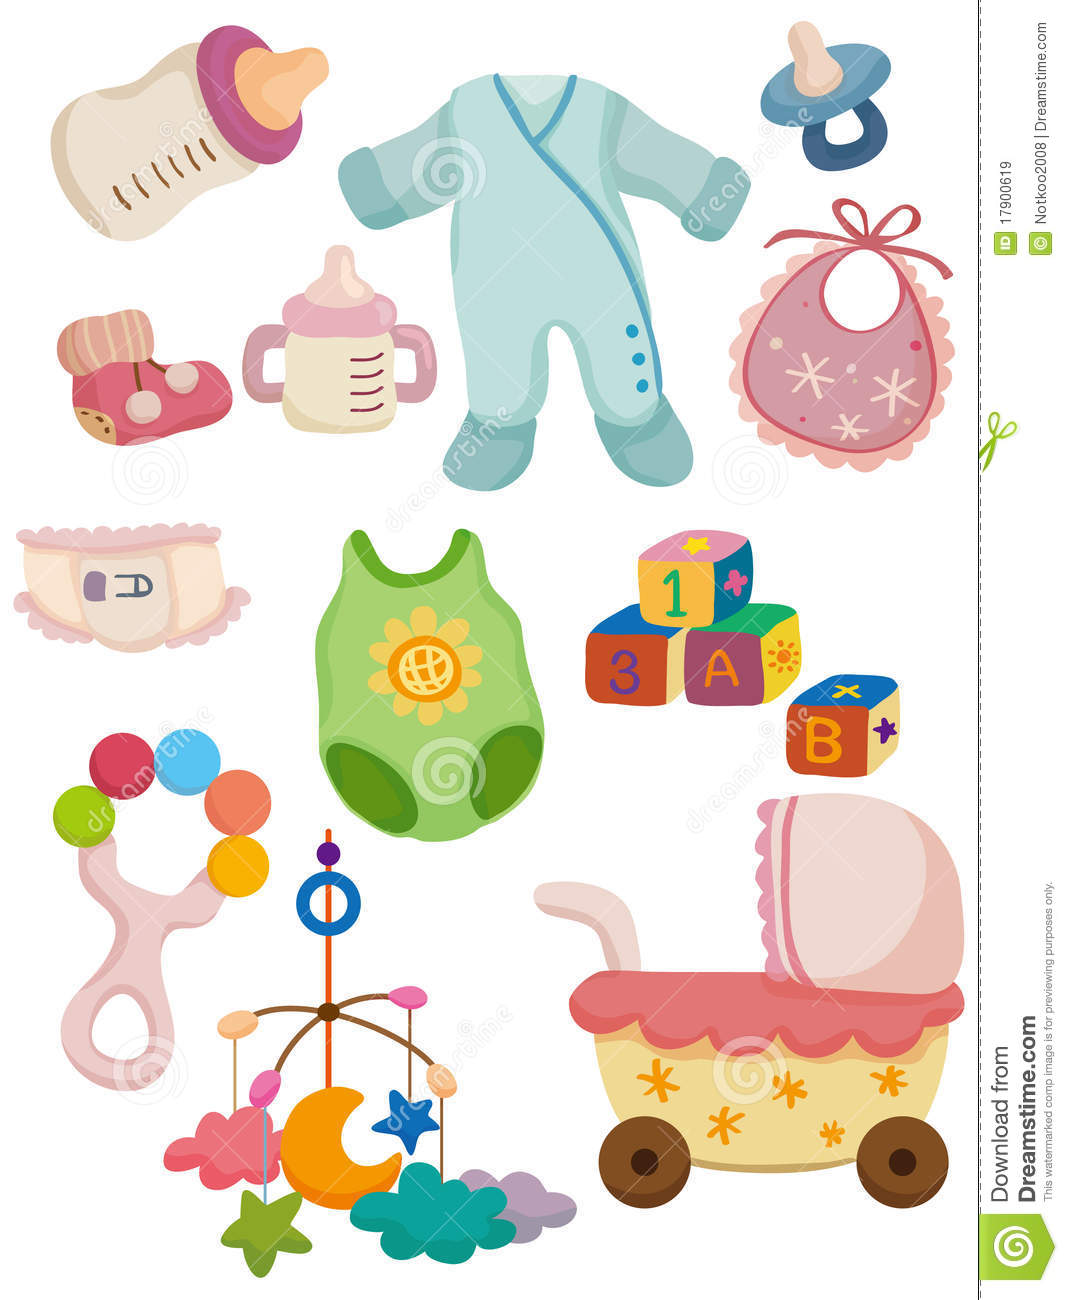 Cartoon Baby Stuff Icon Royalty Free Stock Images   Image  17900619